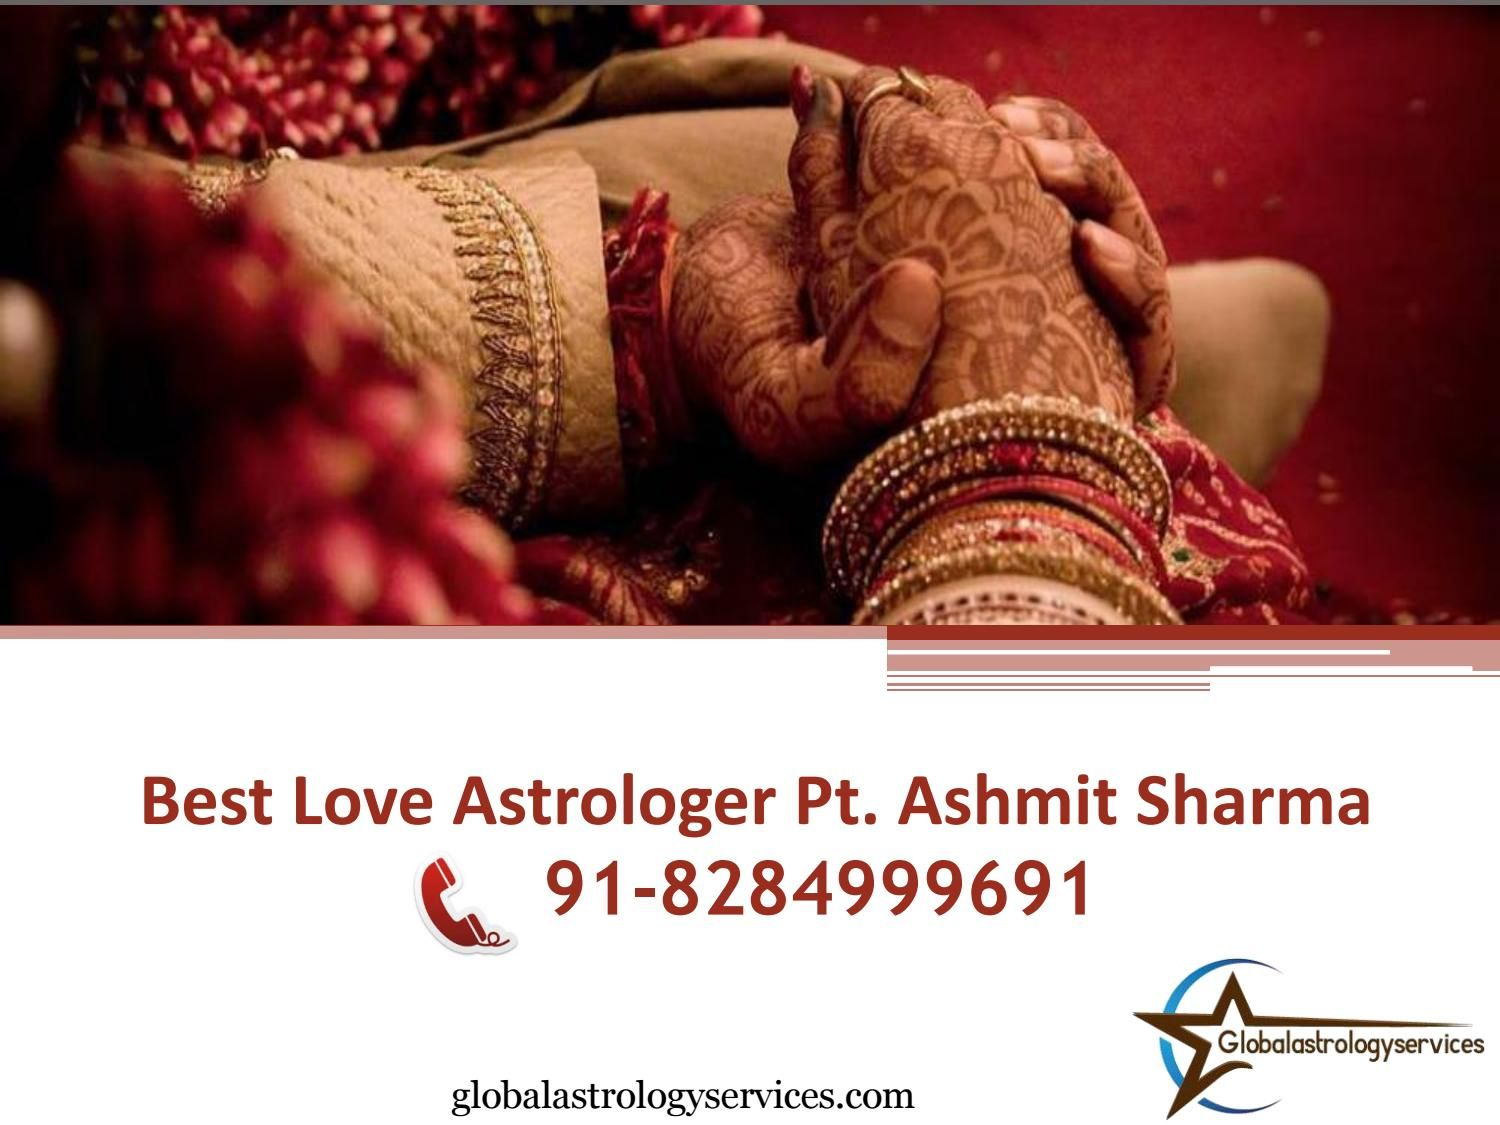 Vashikaran specialist astrologer in india 91 8284999691 pt ashmit shrama provide online love marriage solution at best india prices ji can analyze the relationship chart of your love marriage and solve out your geenschuldenfo Choice Image